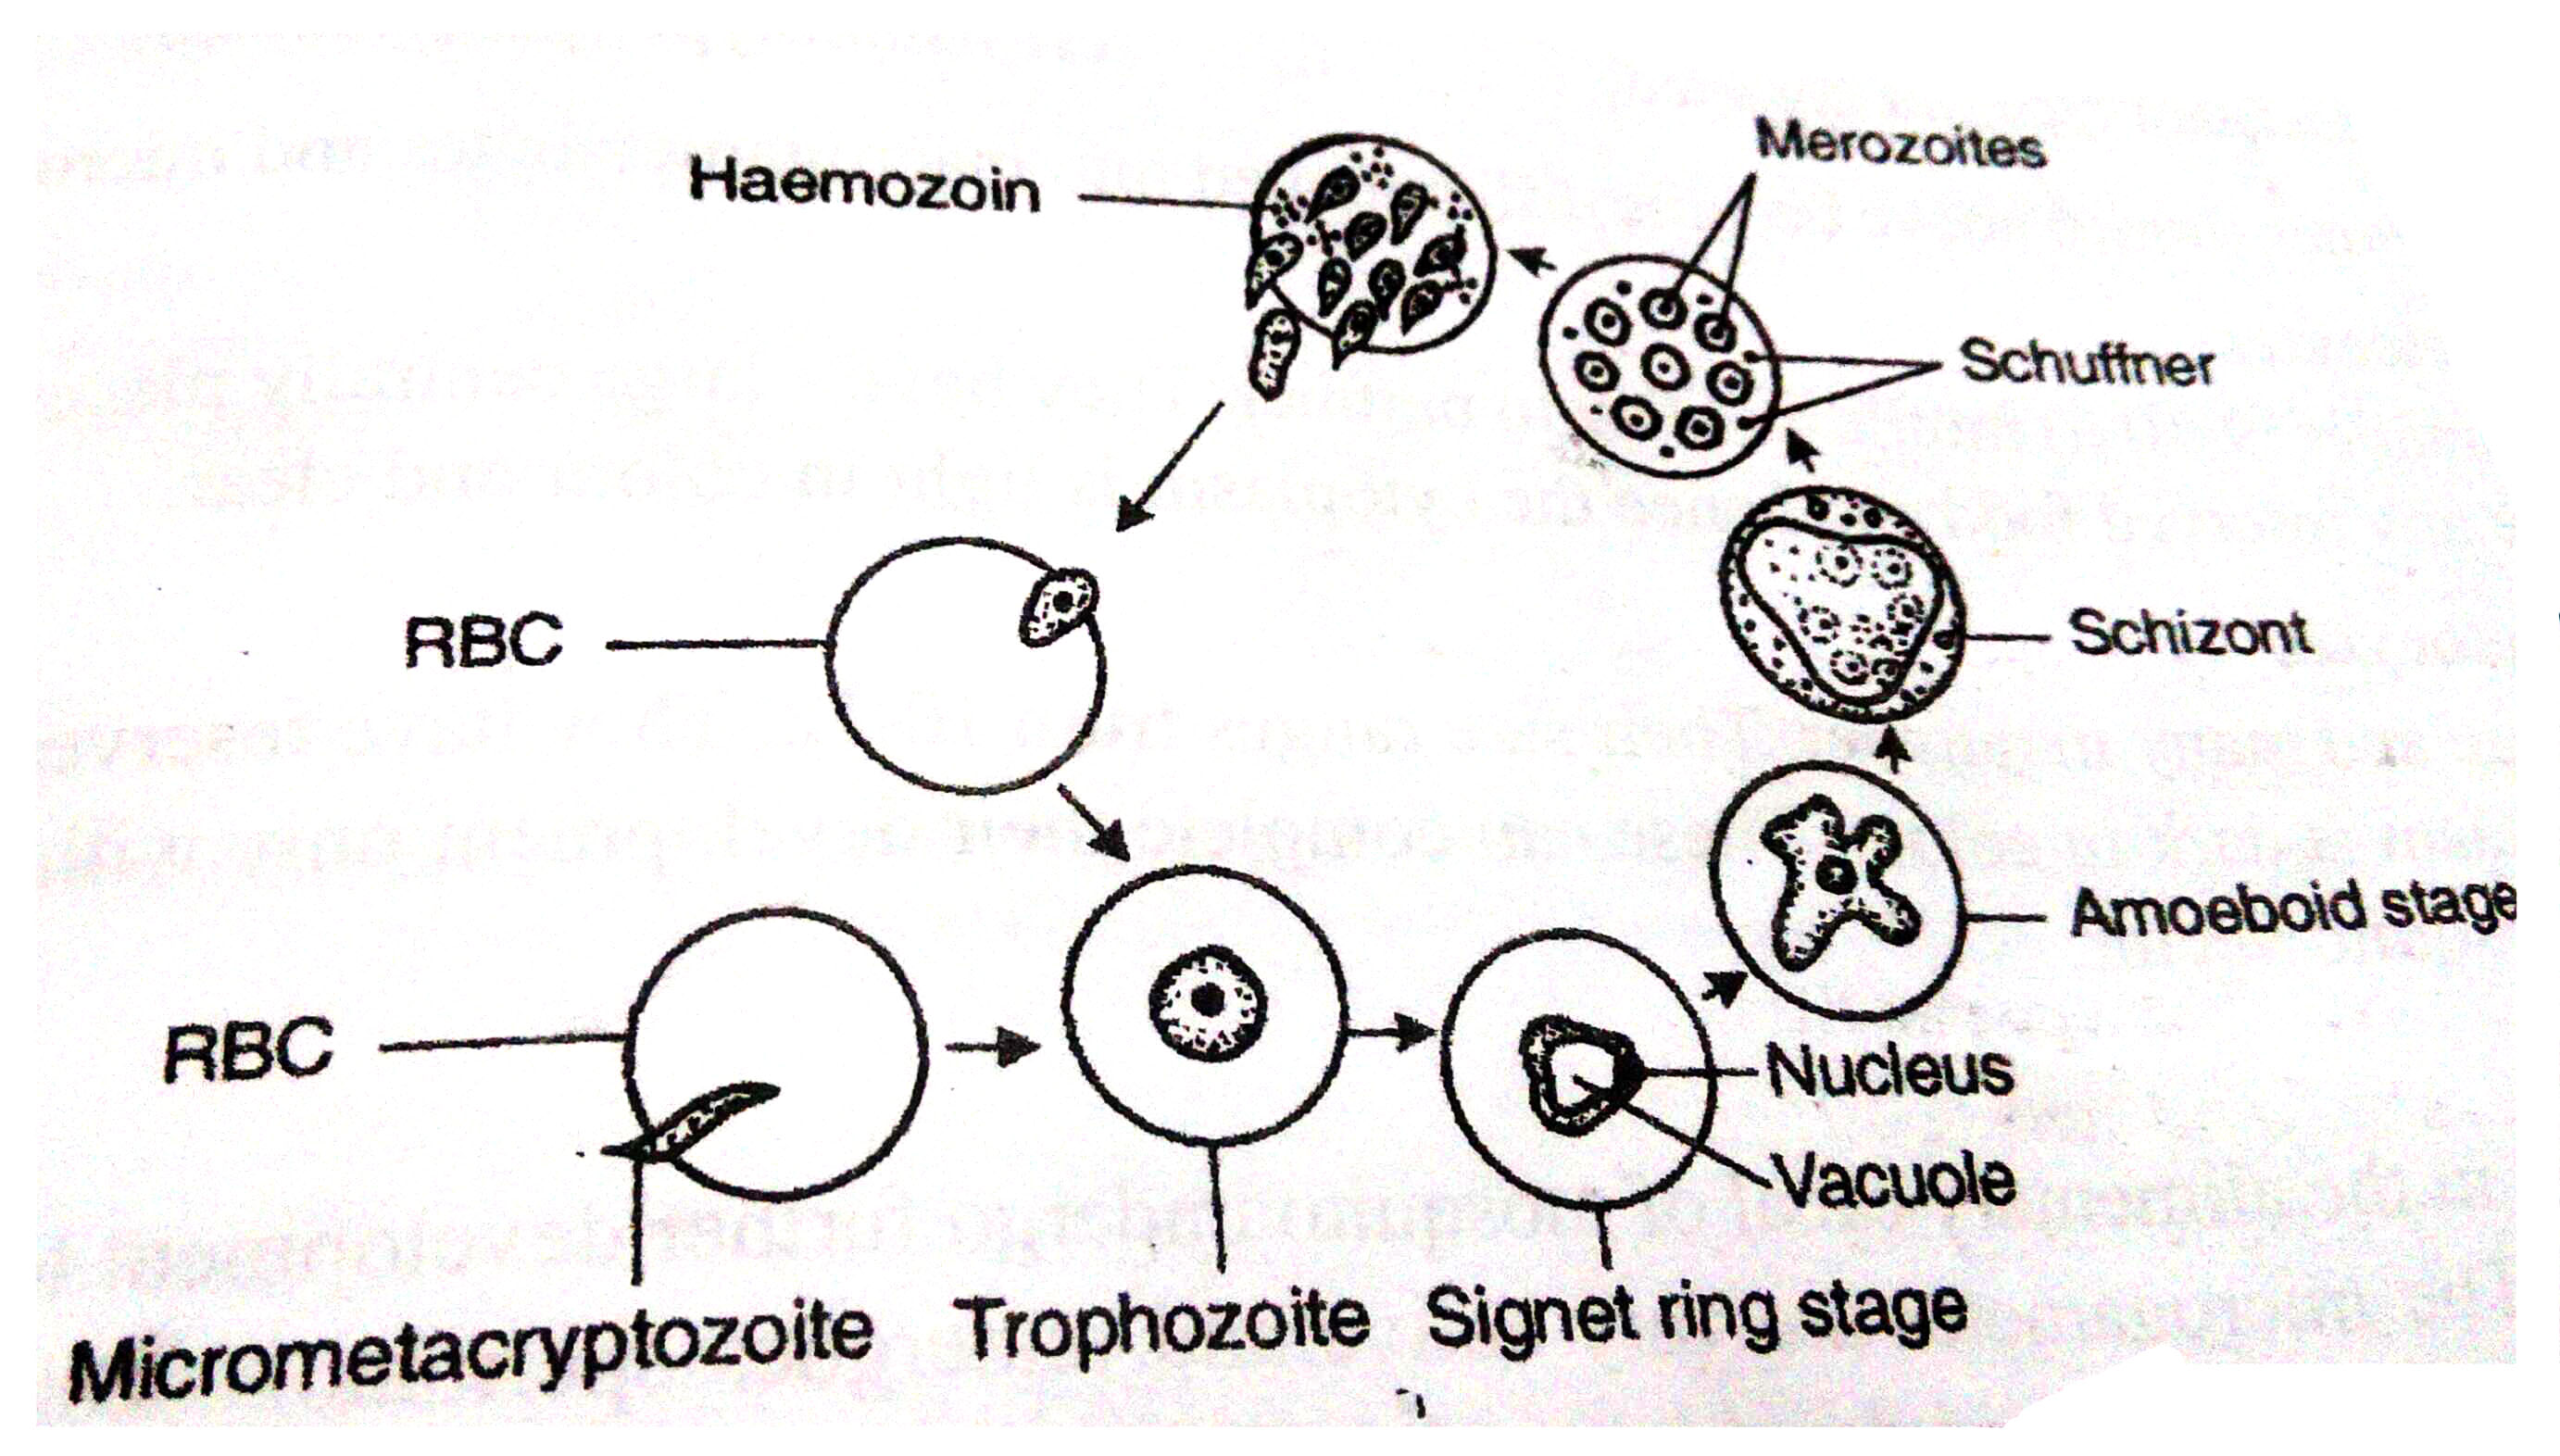 Life Cycle Of Plasmodium Vivax